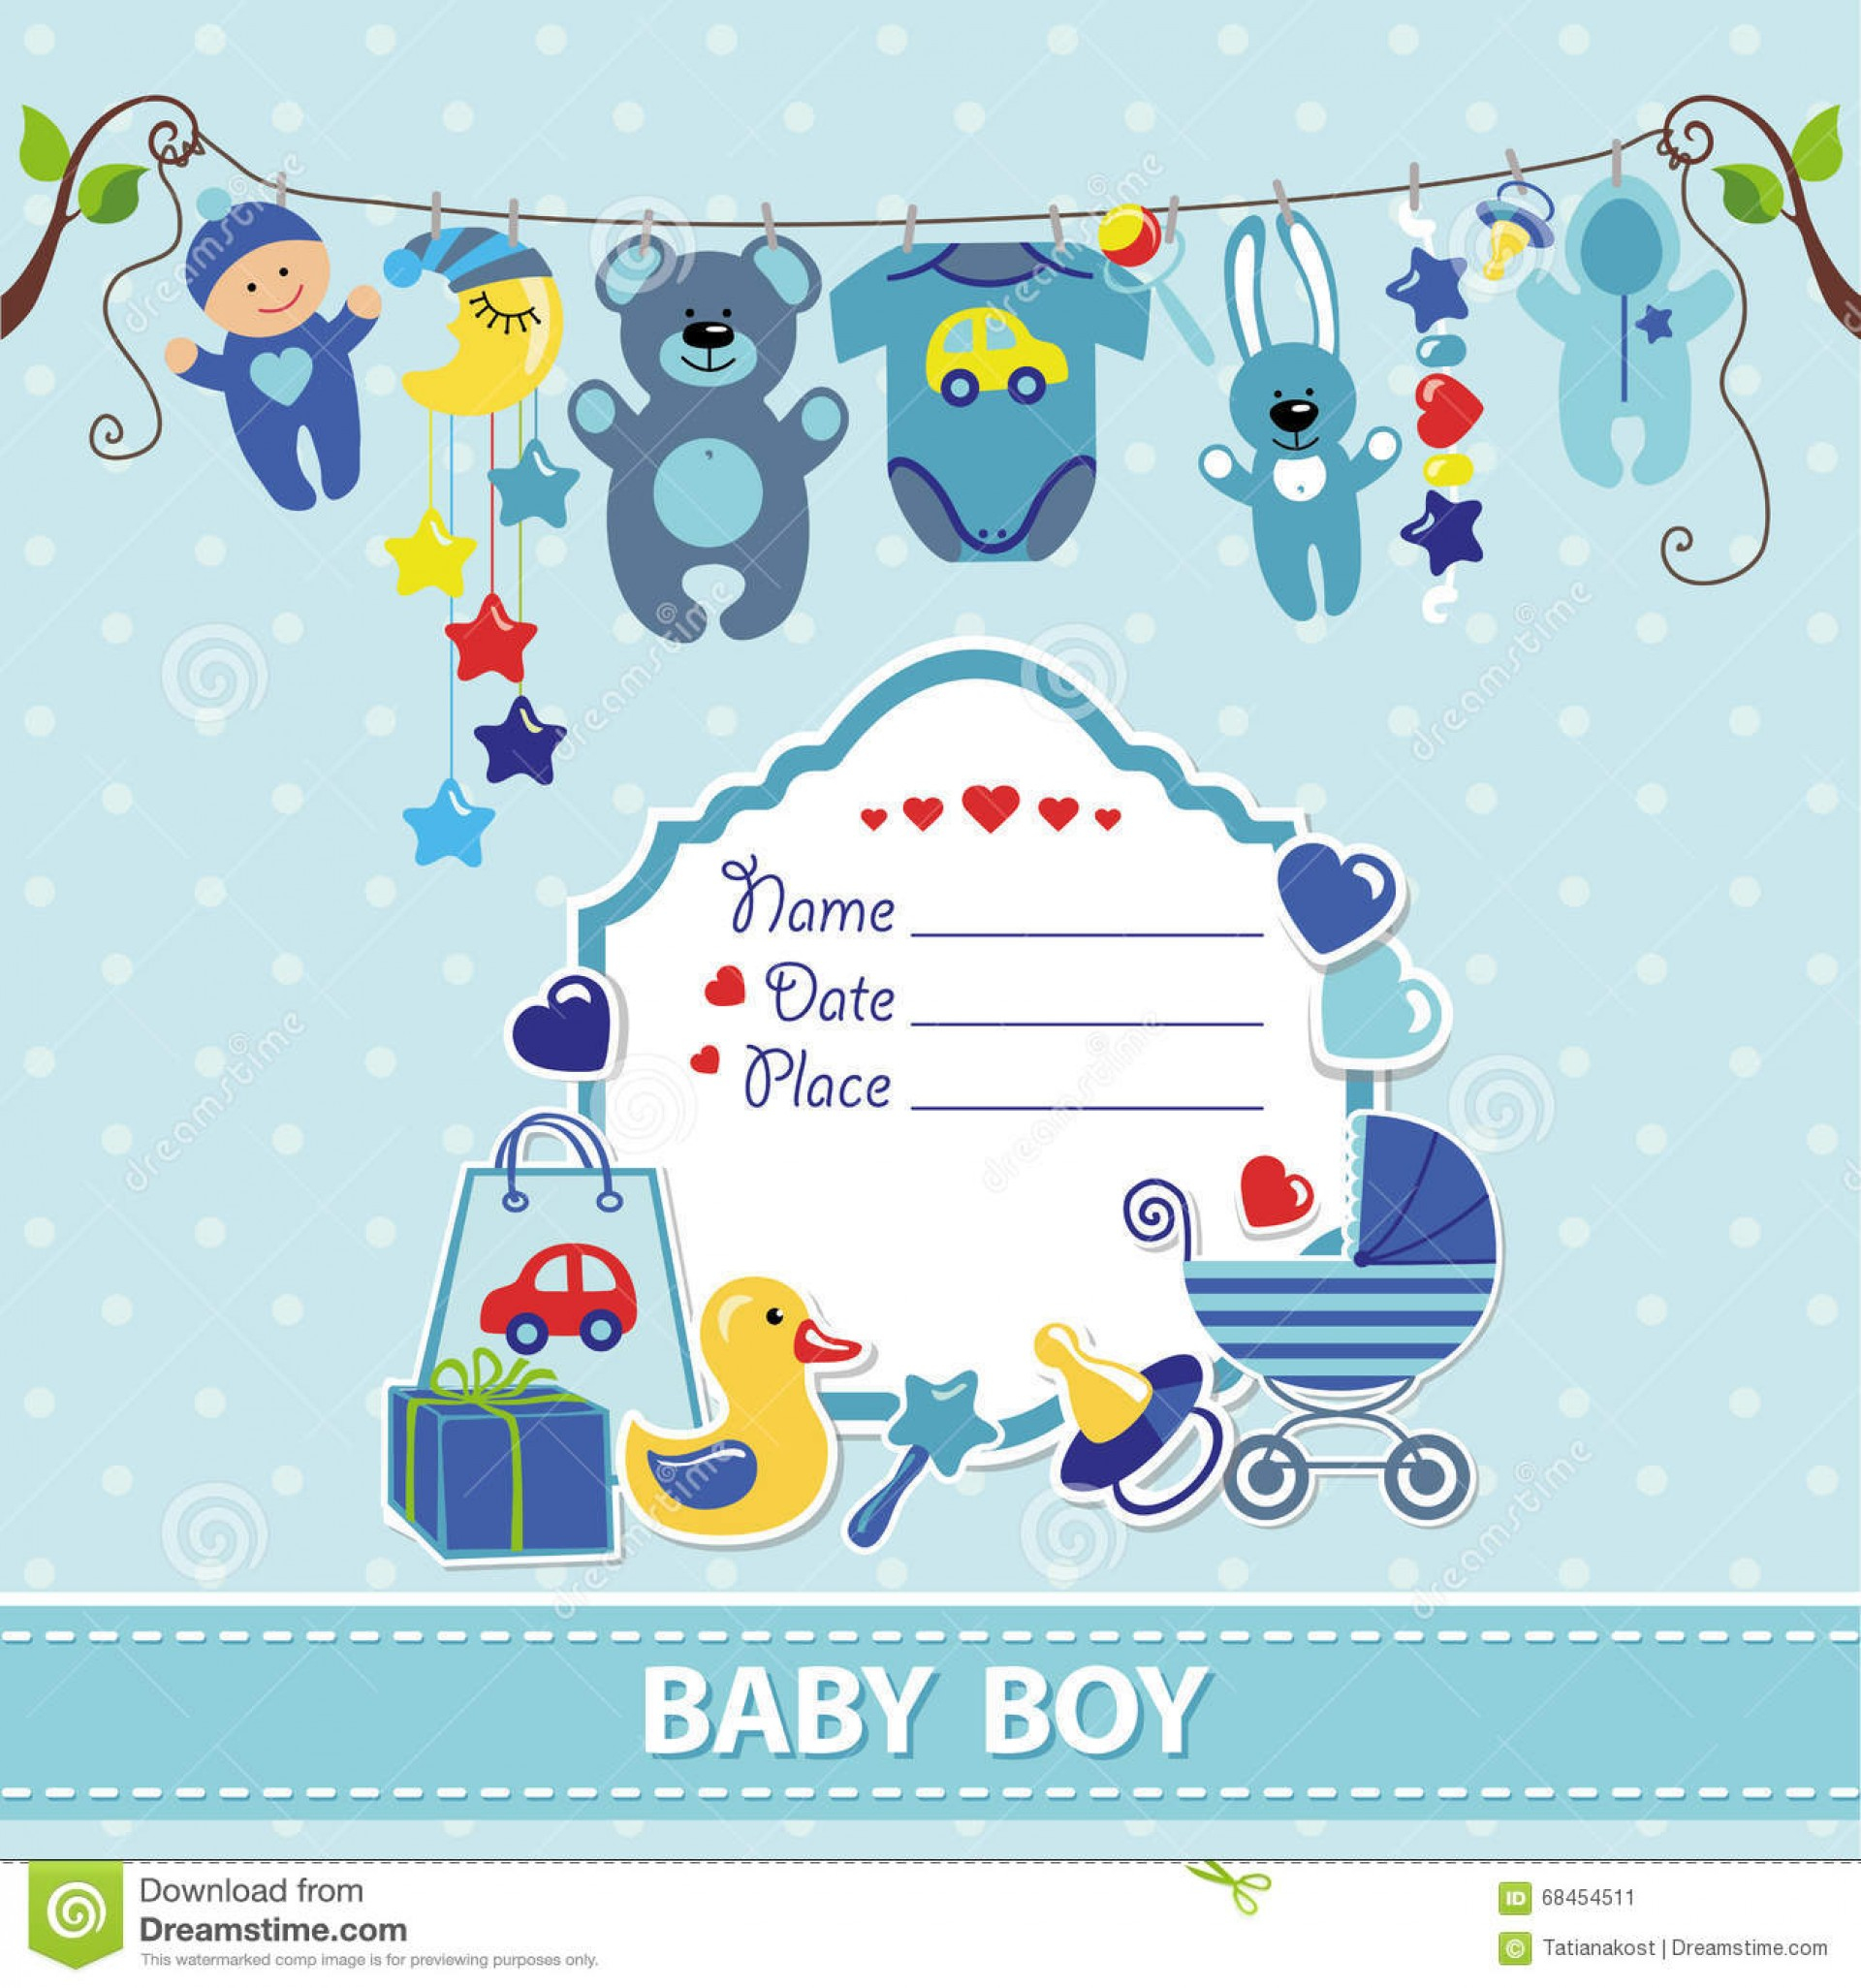 015 New Born Baby Boy Card Shower Invitation Template Flat Elements - Baby Shower Cards Online Free Printable